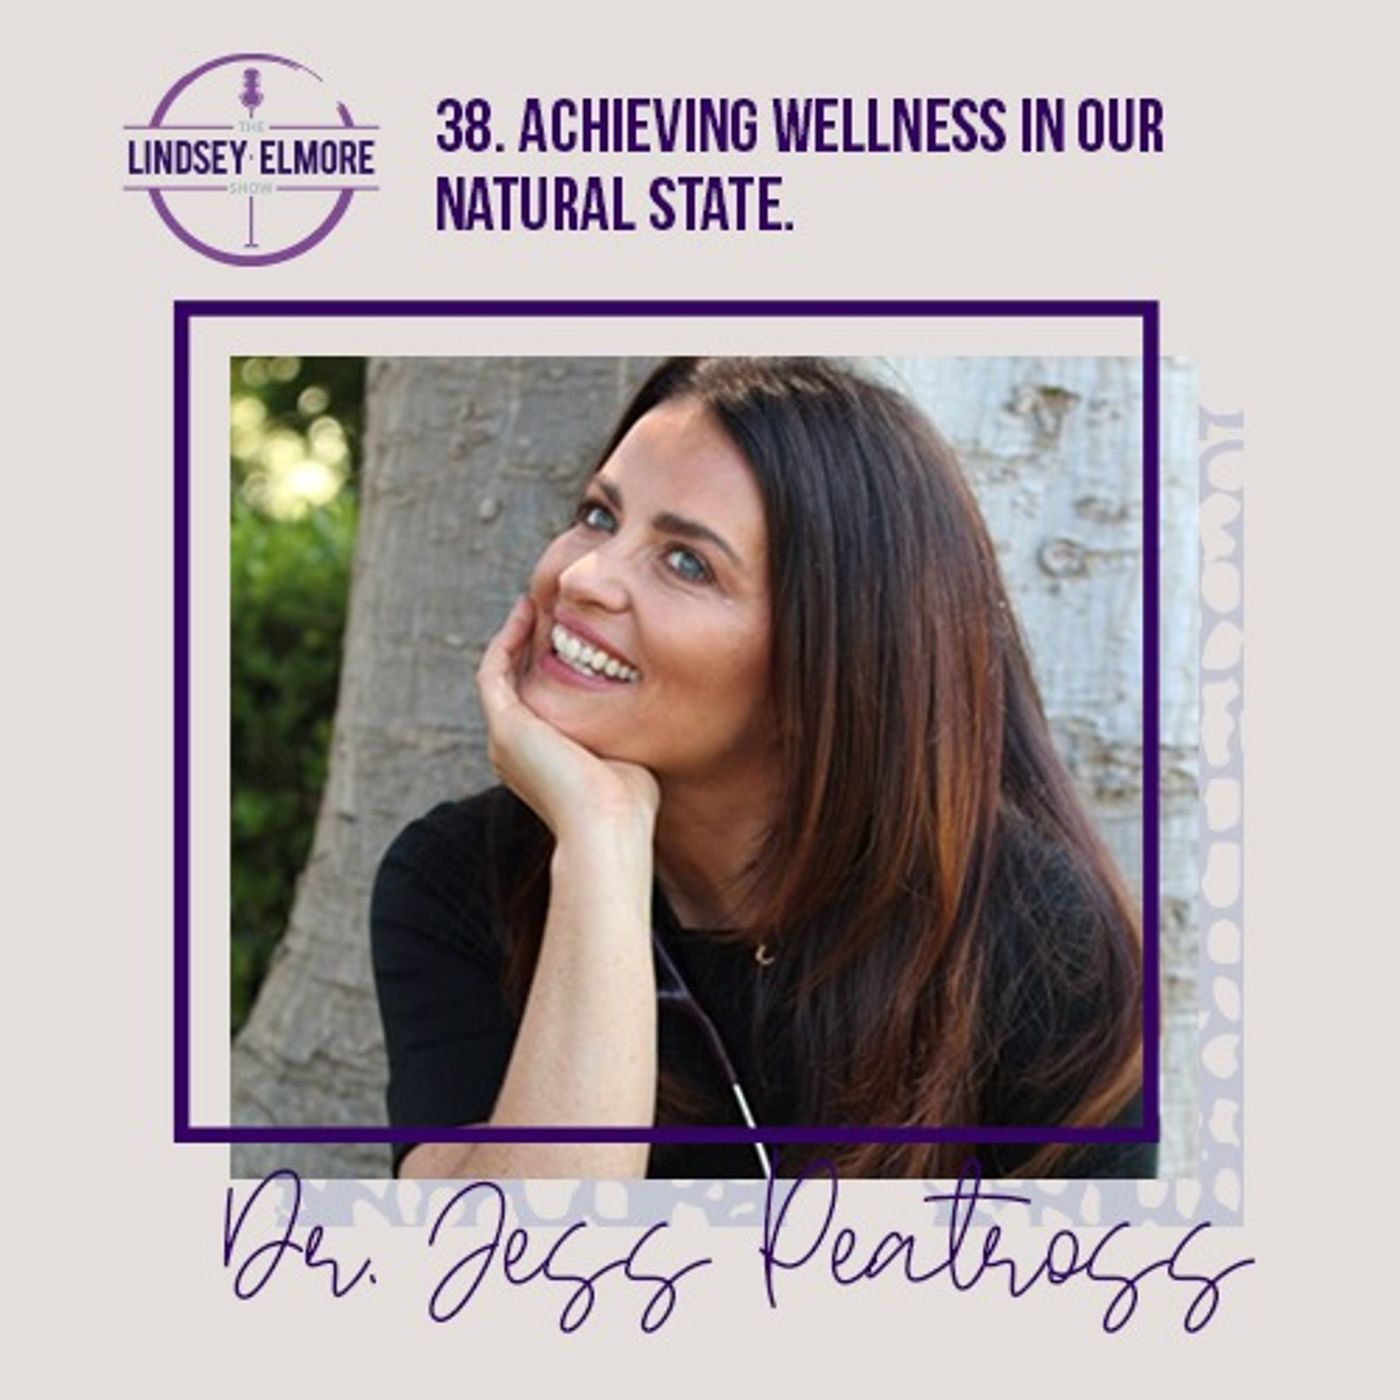 Achieving wellness in our natural state. An interview with Dr. Jess Peatross.